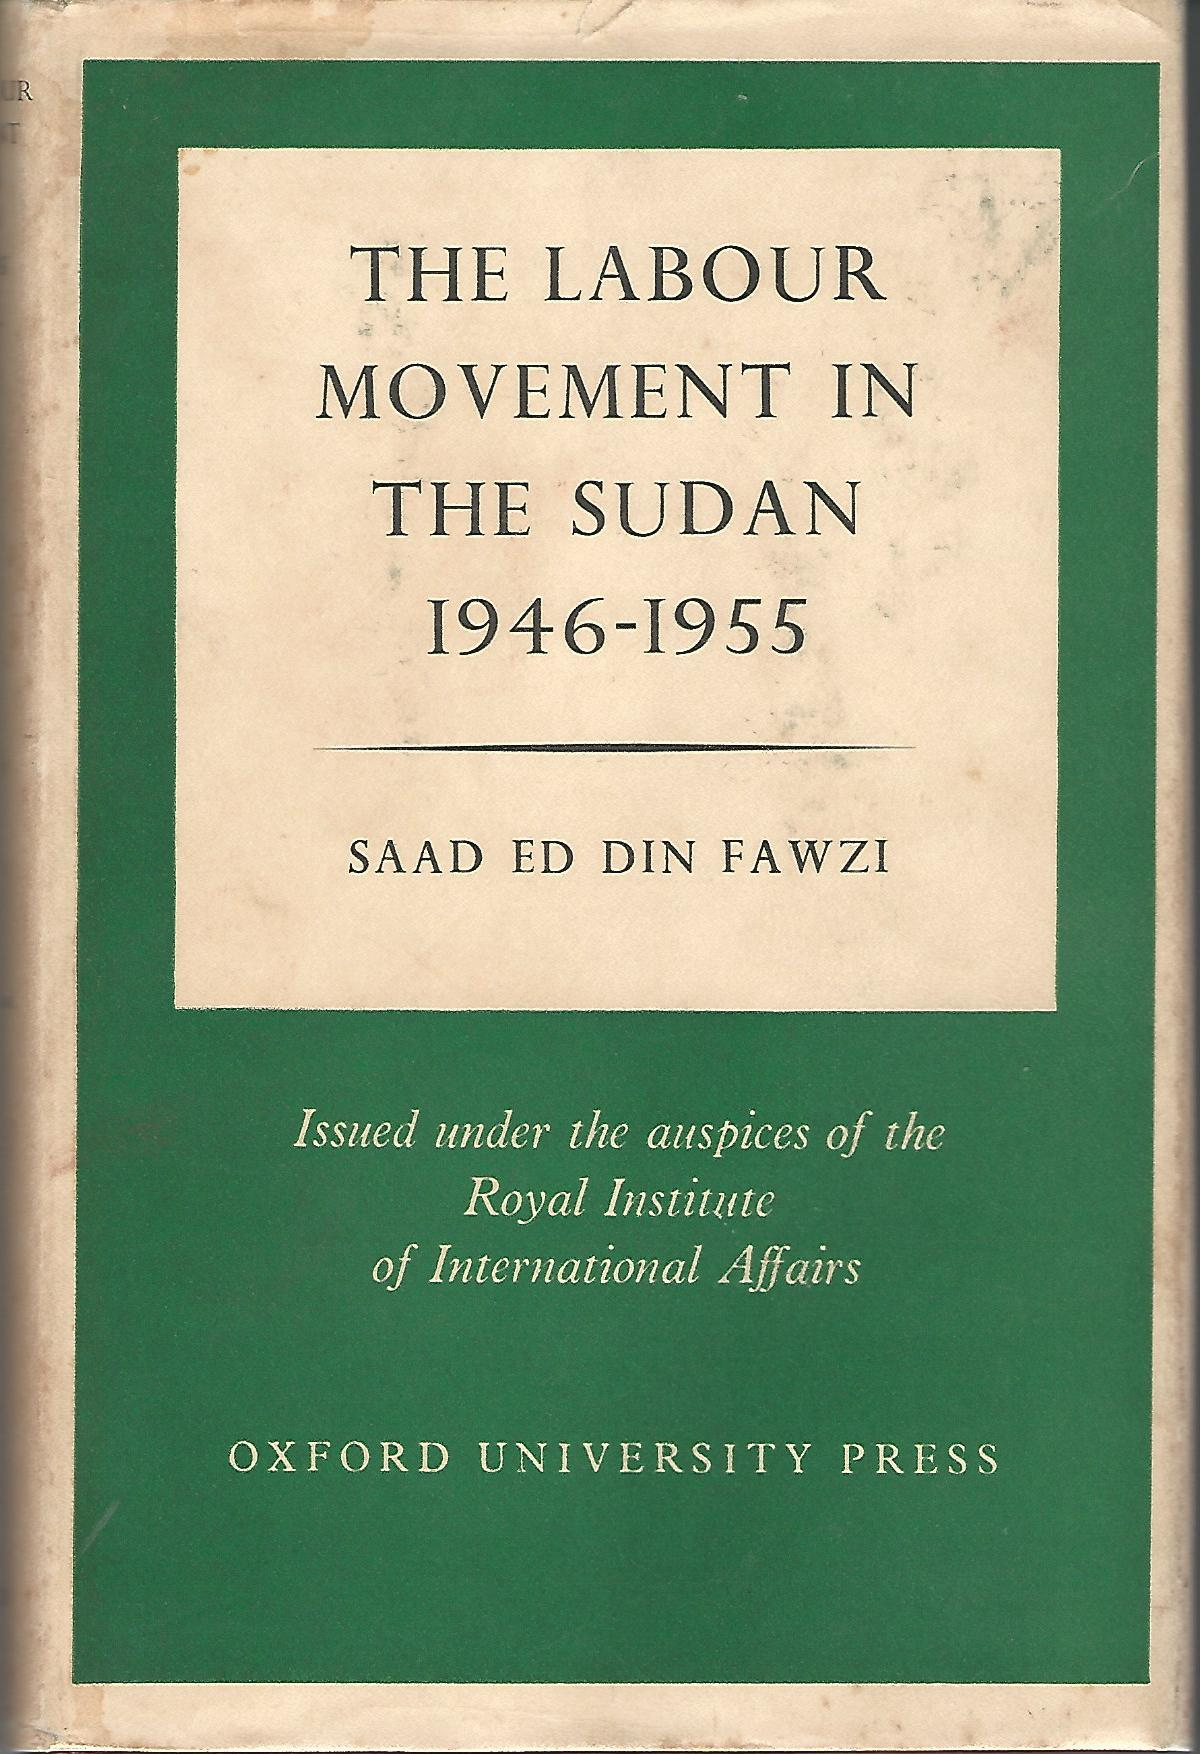 Image for The Labour Movement in the sudan 1946-1955.